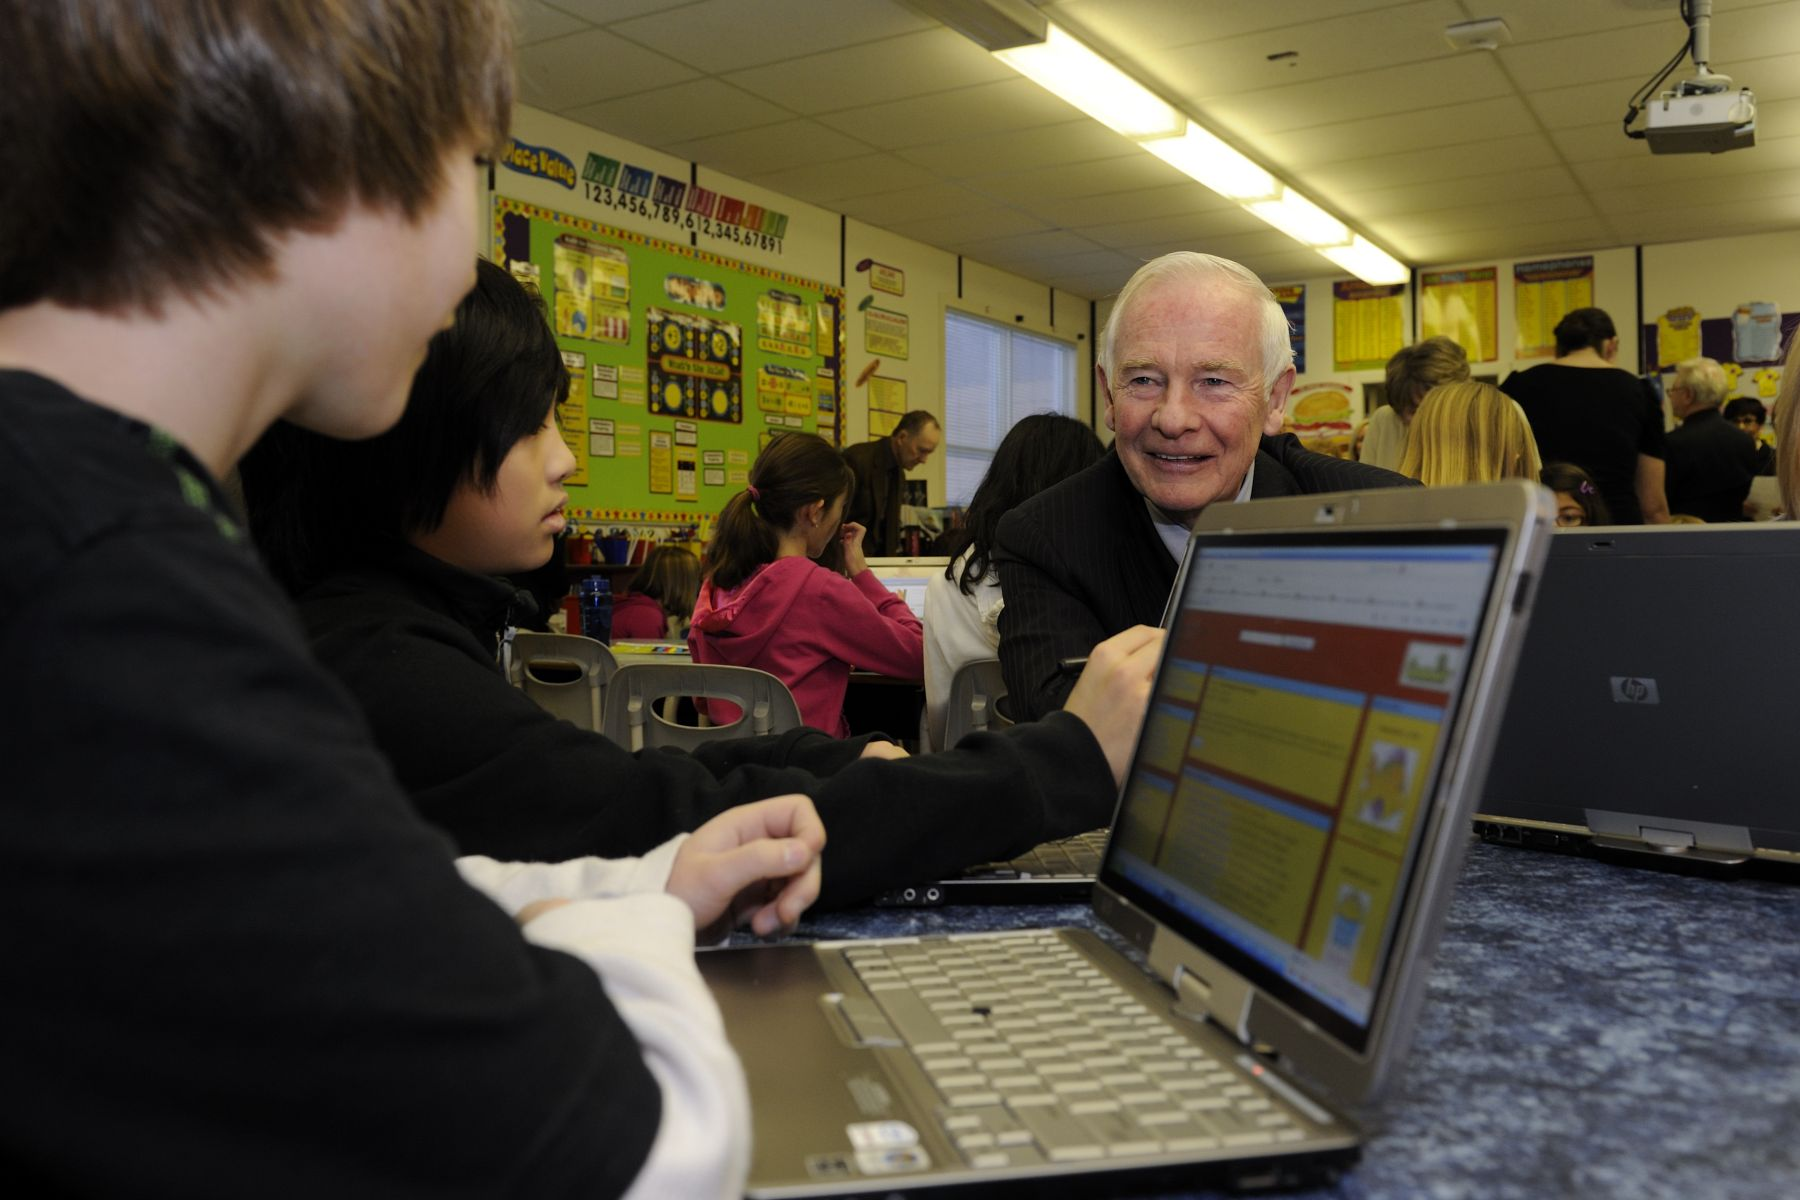 The Governor General took the time to speak with students on the importance of education.